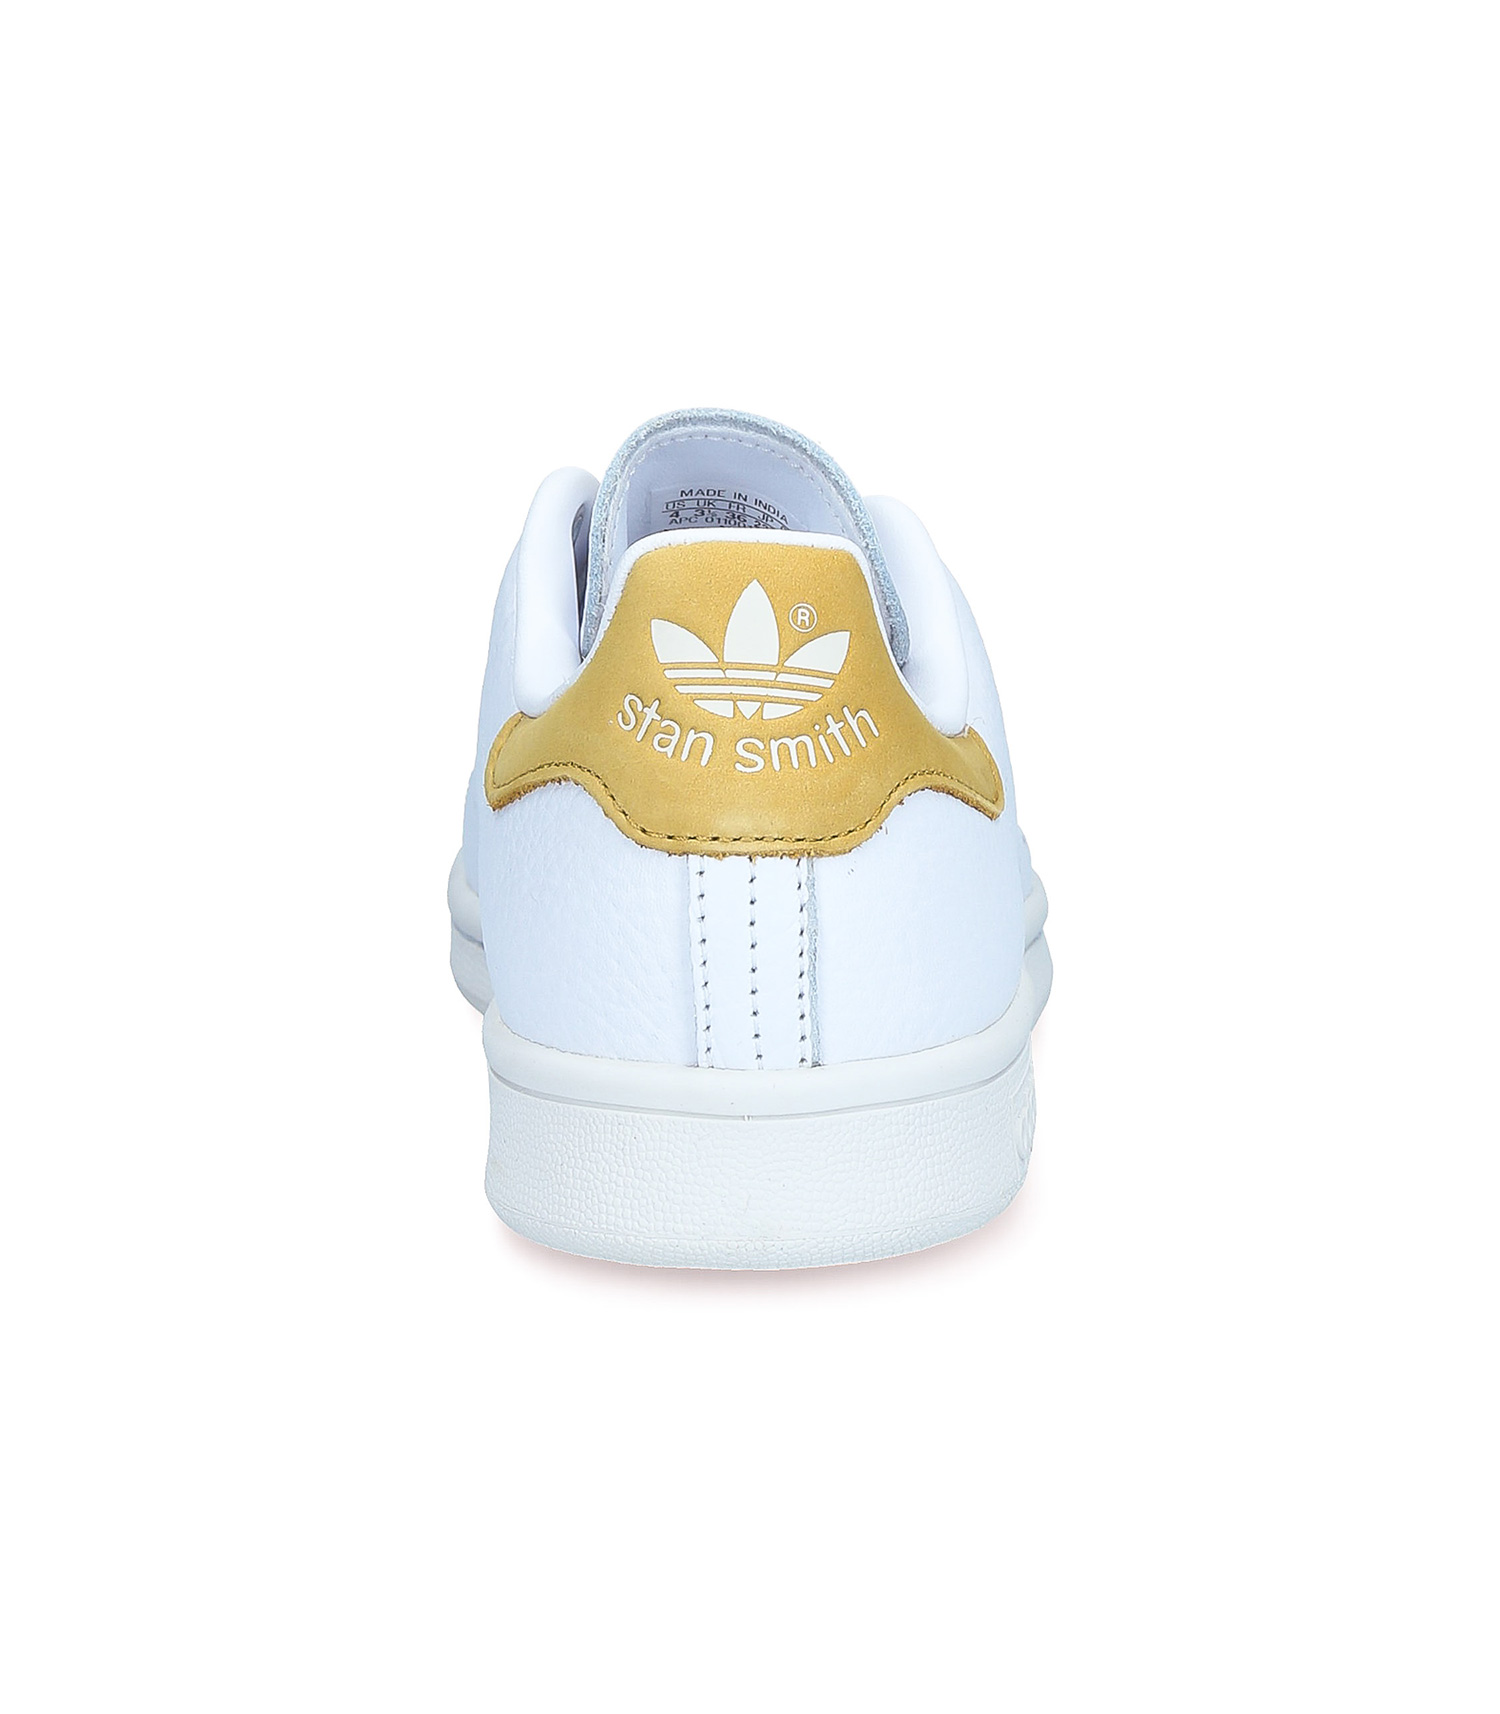 Sneakers Stan Smith Blanc/Moutarde